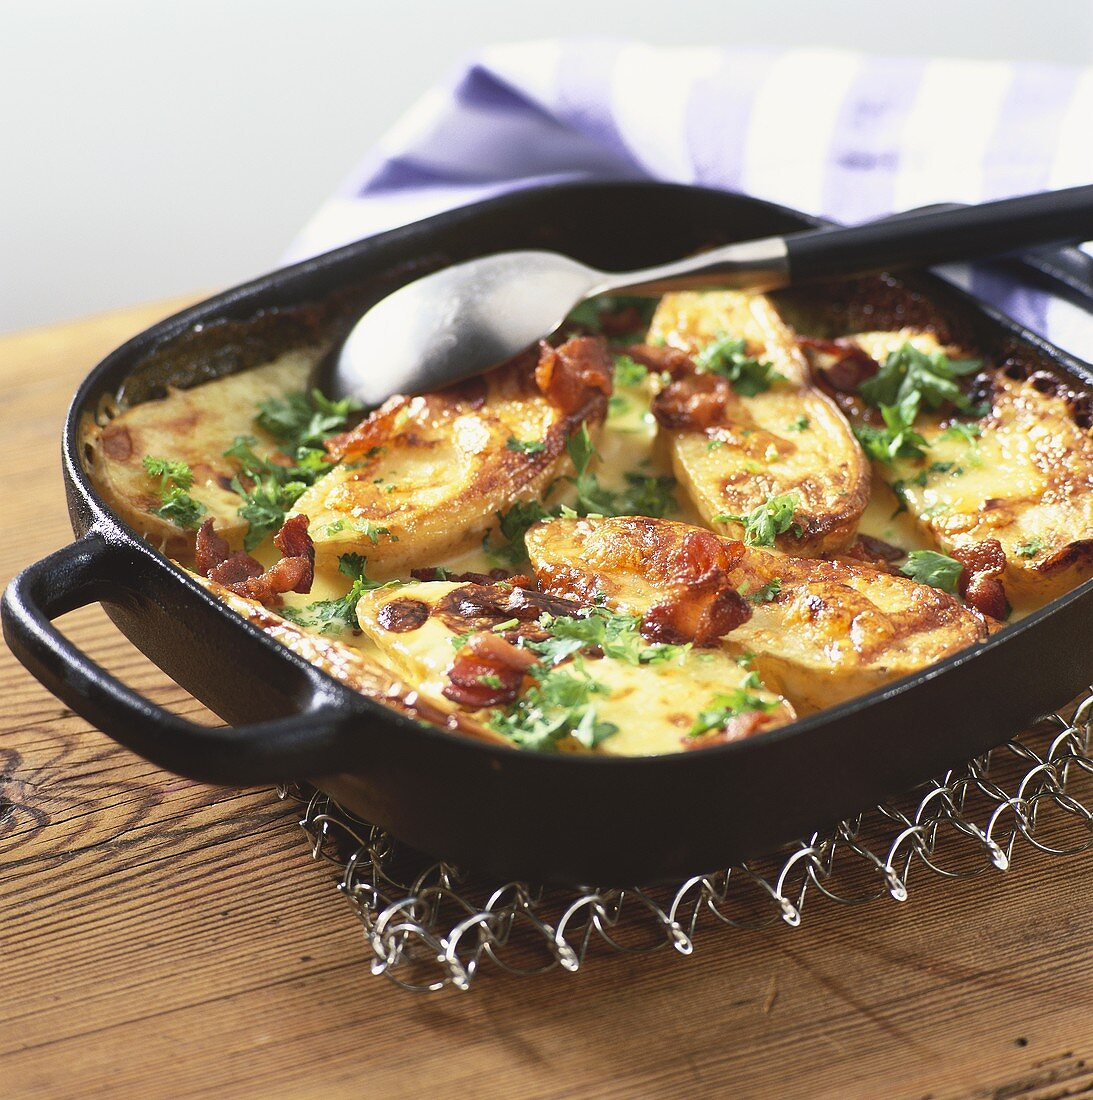 Oven-baked potatoes with bacon and cheese